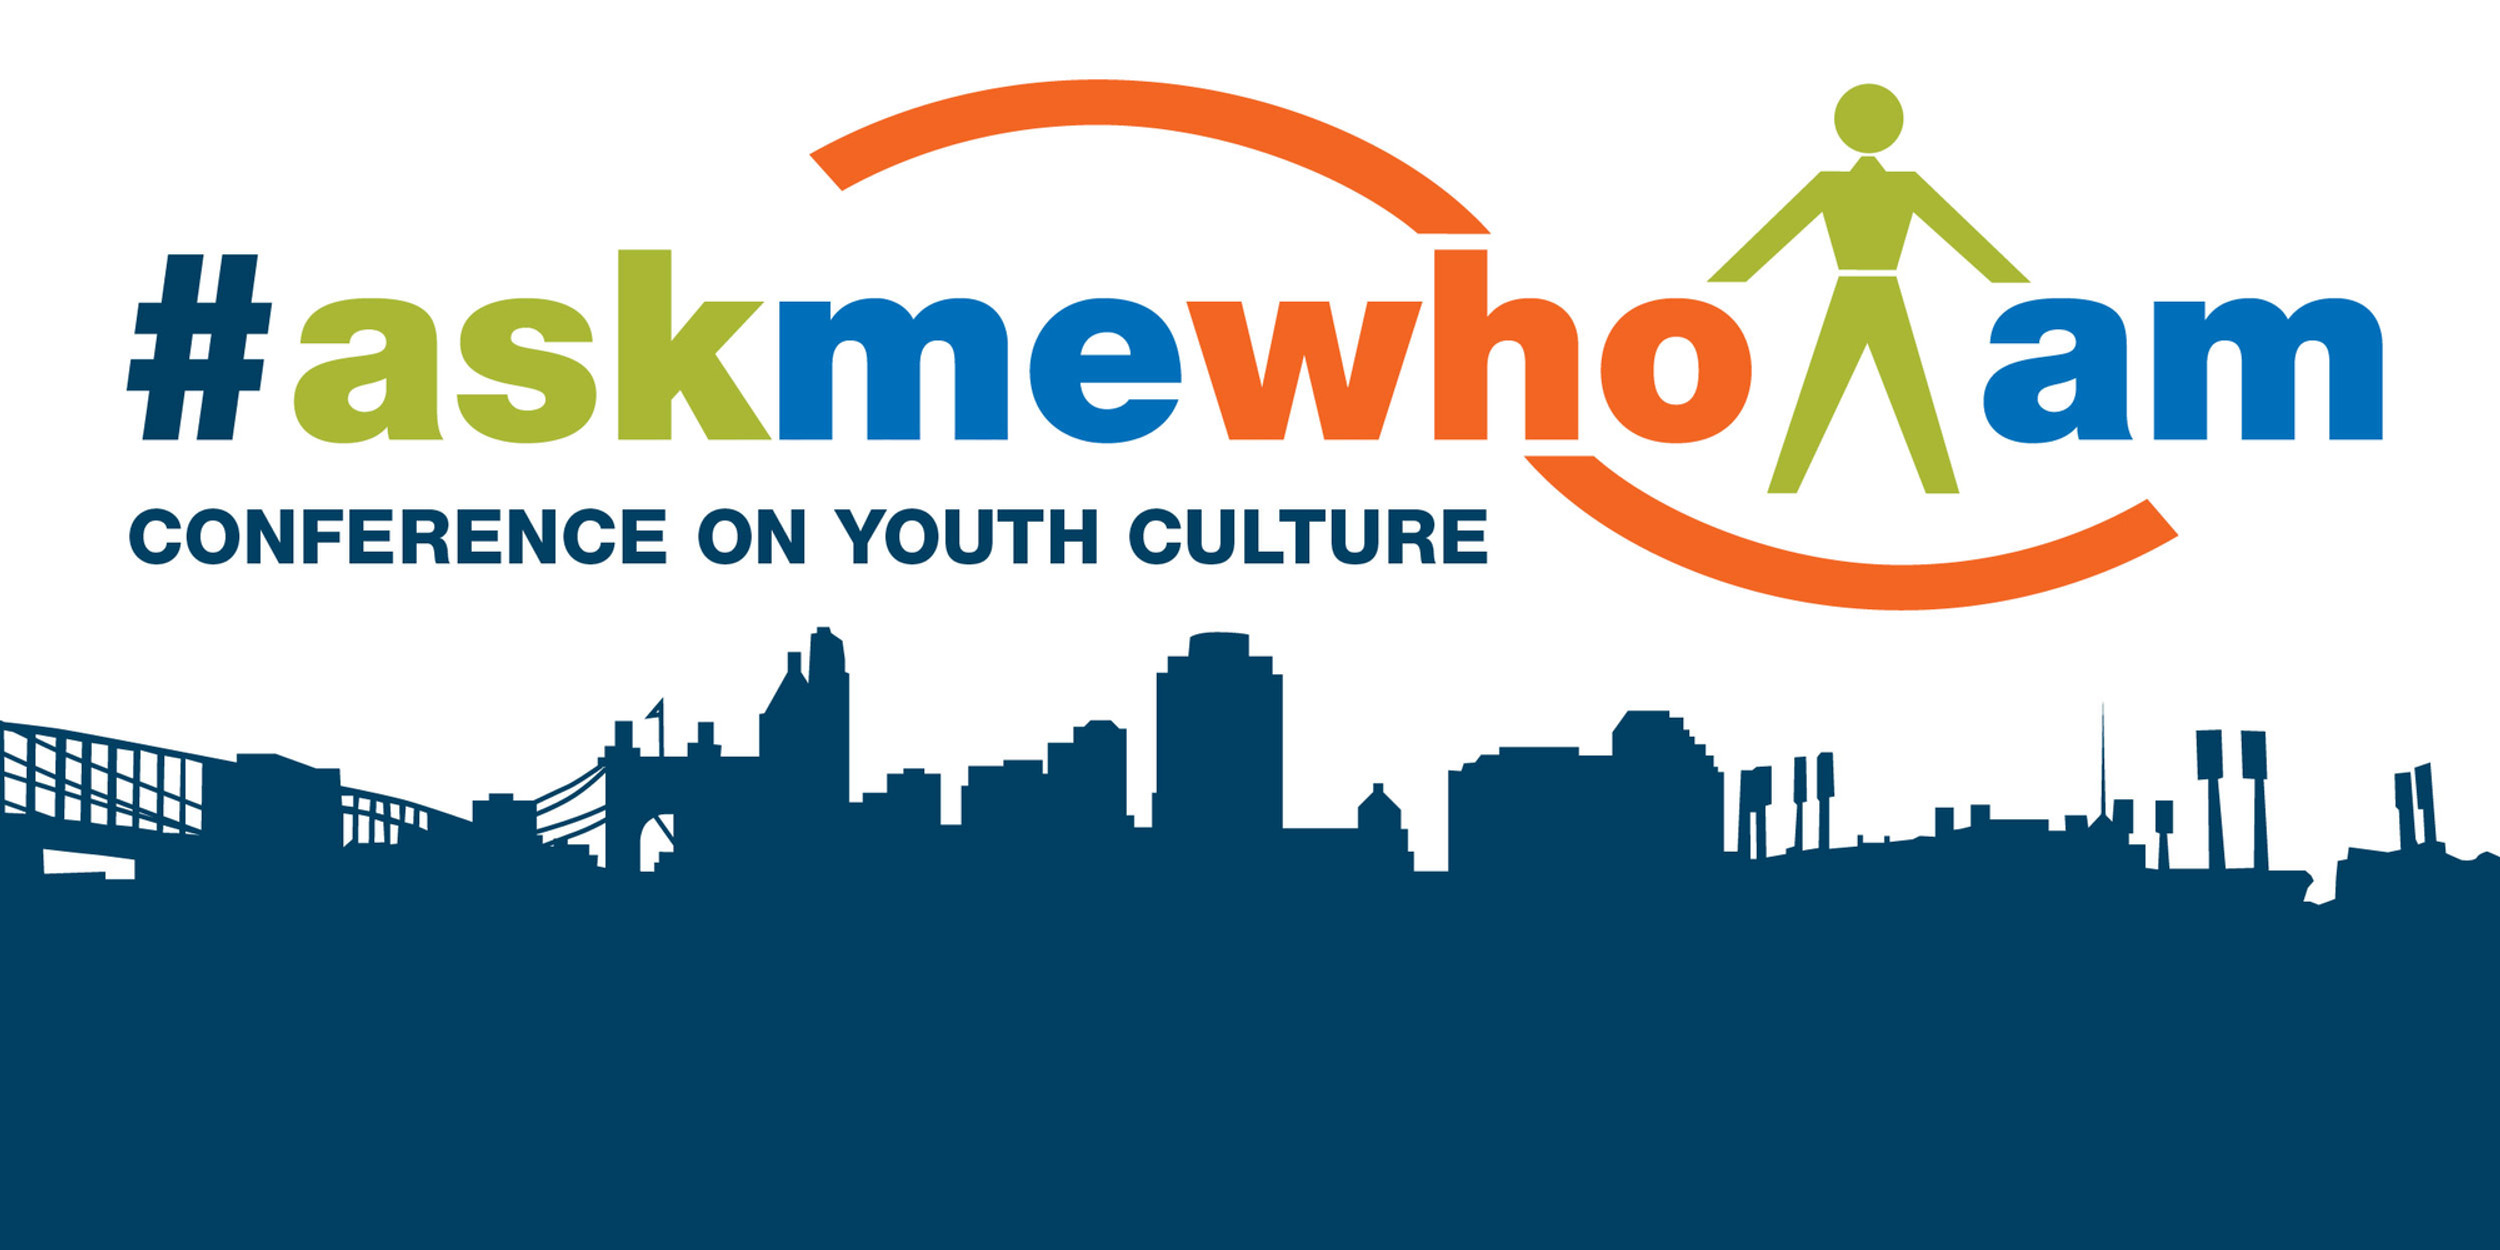 Youth Askmewhoiam